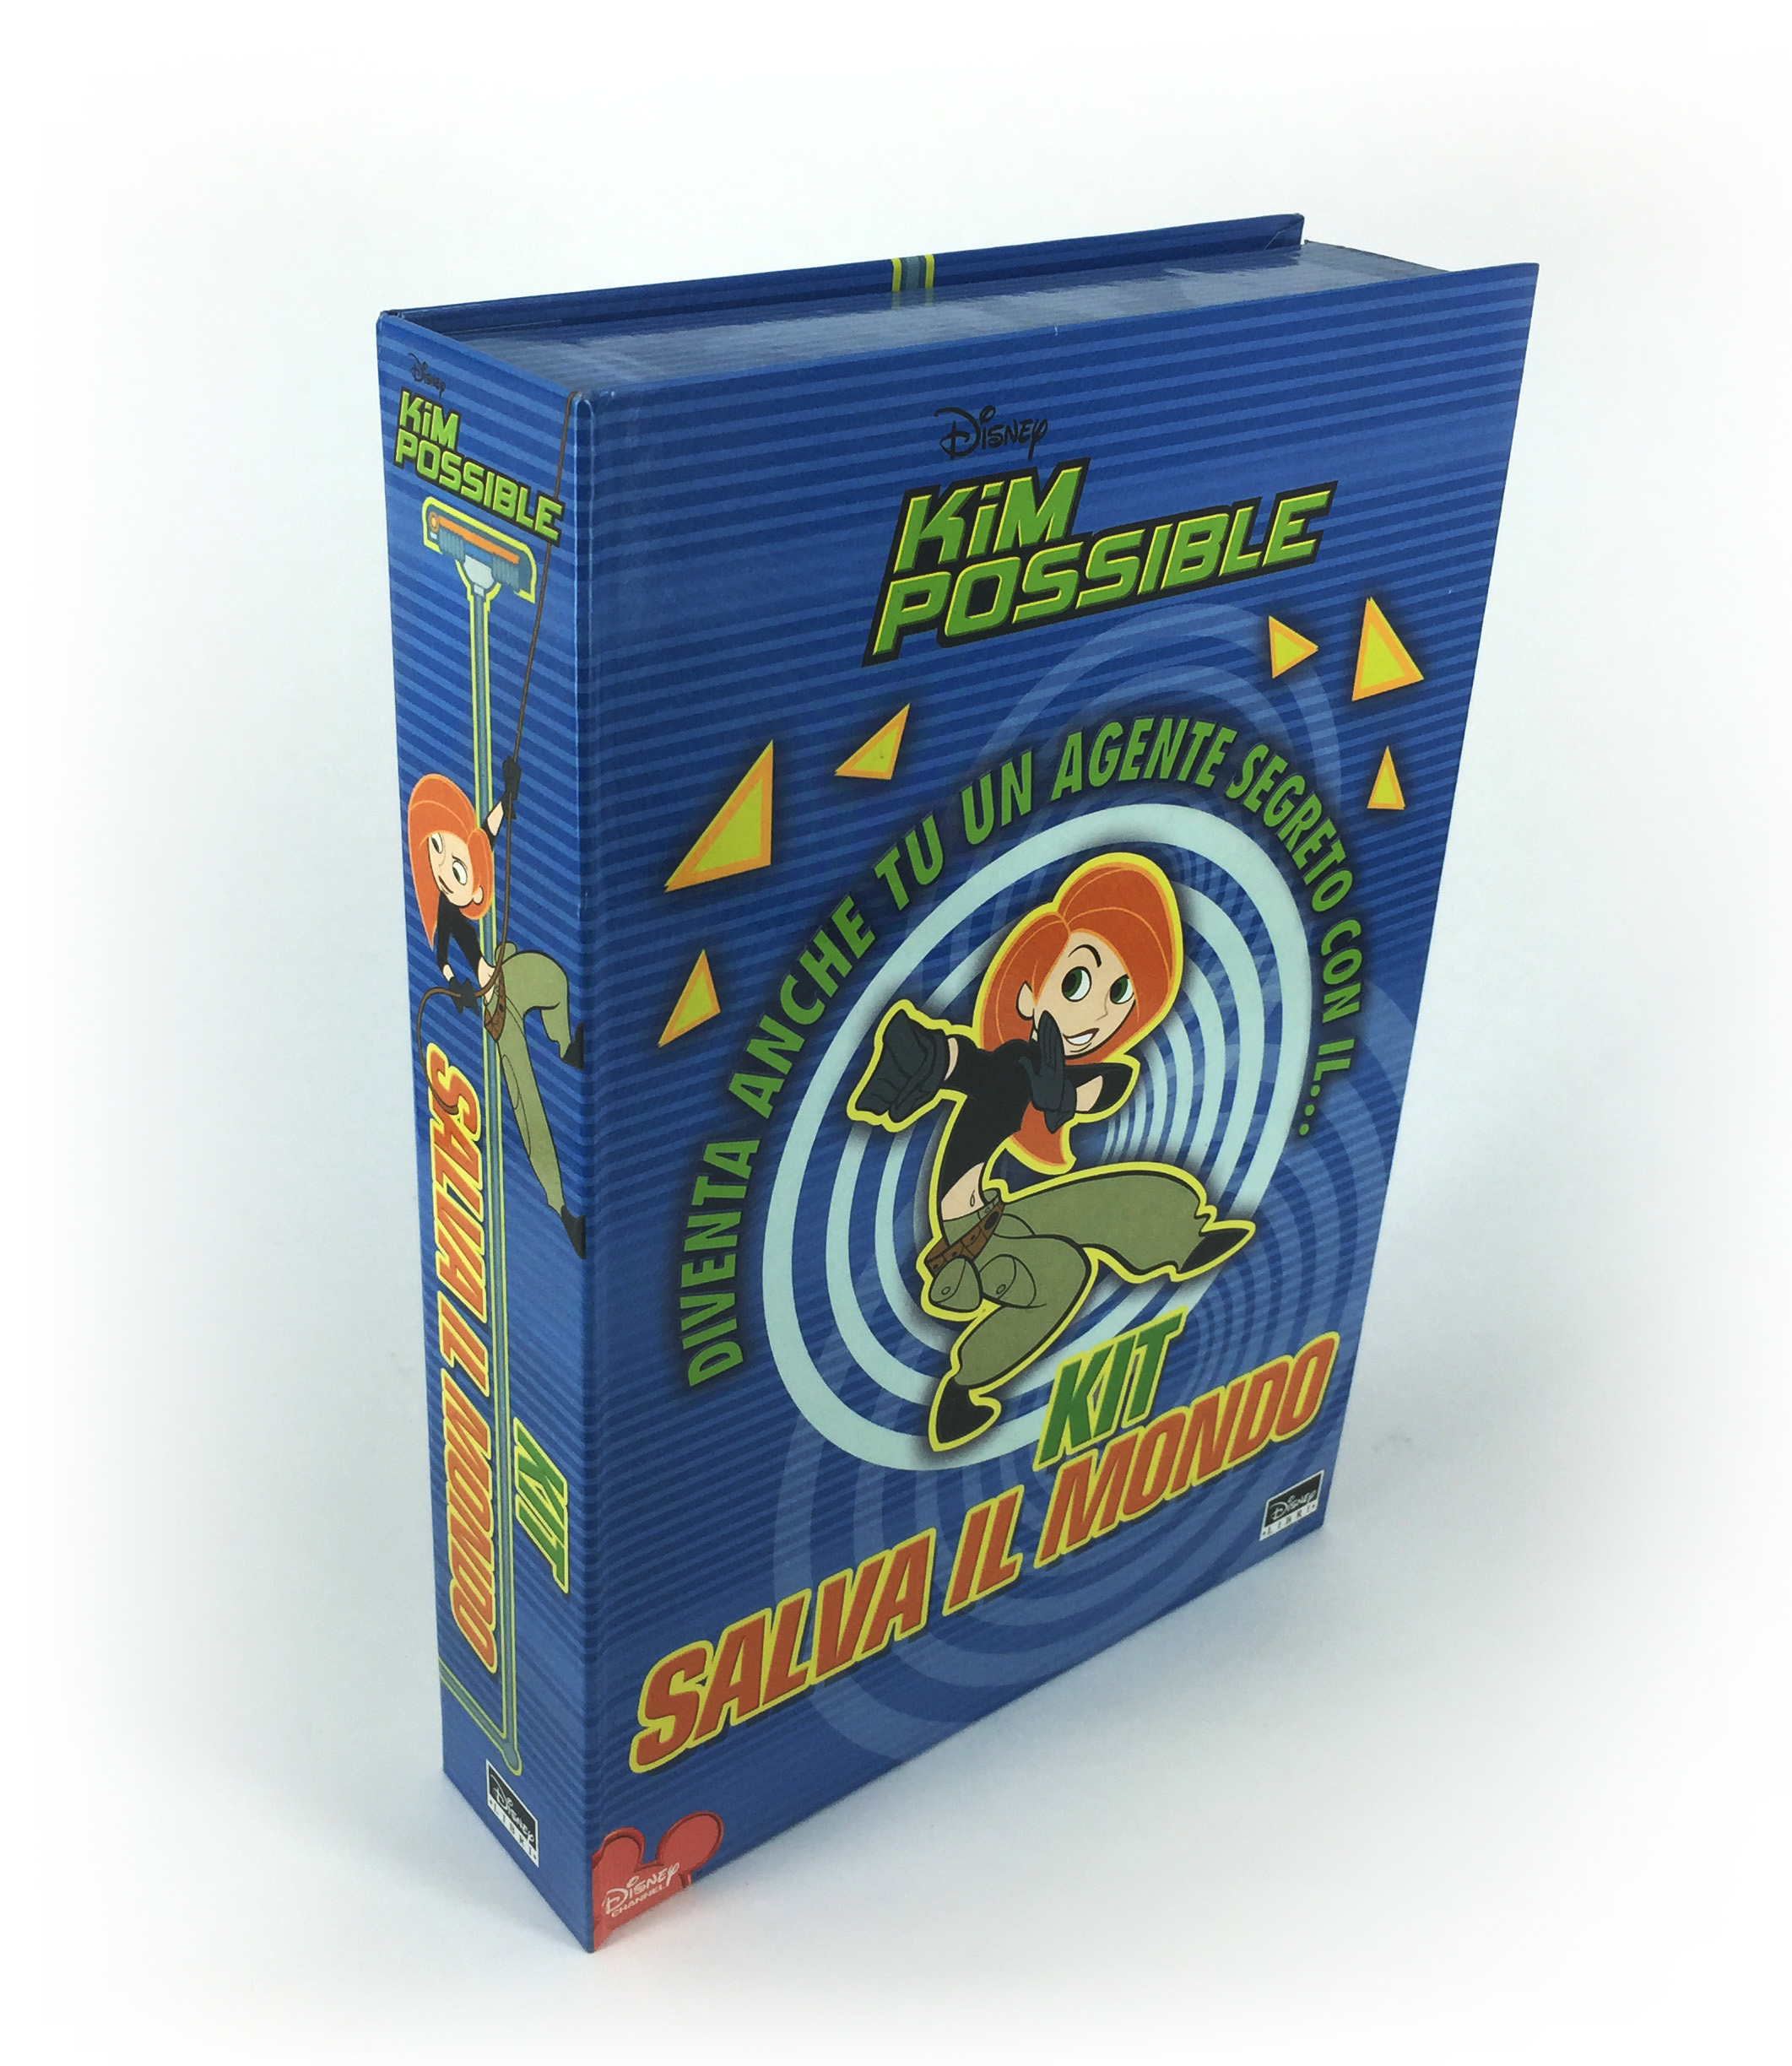 KIMPossible box